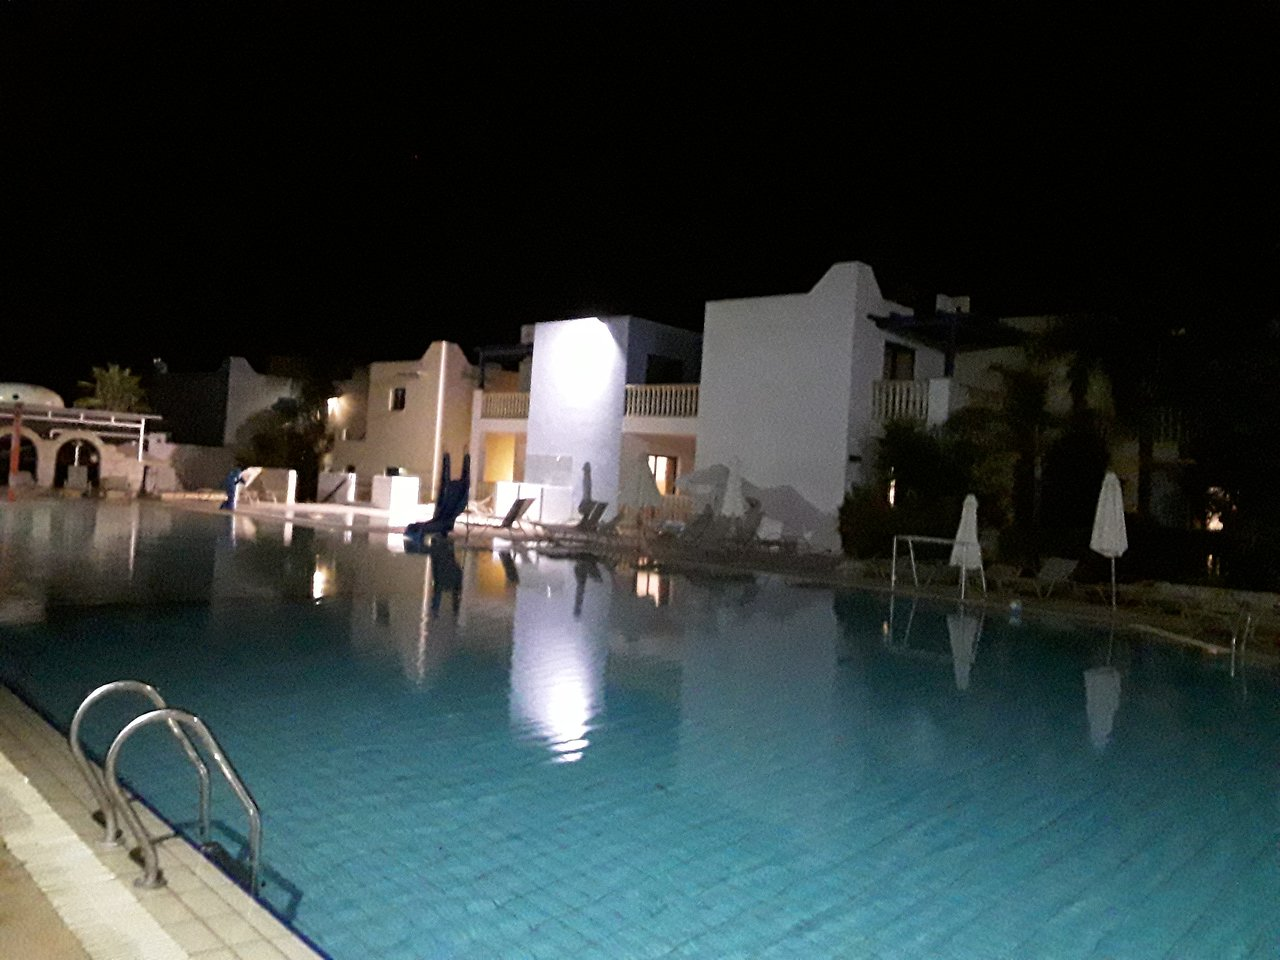 Eleni Holiday Village 4, Cyprus: reviews, hotel infrastructure, service, food, beach, entertainment 3